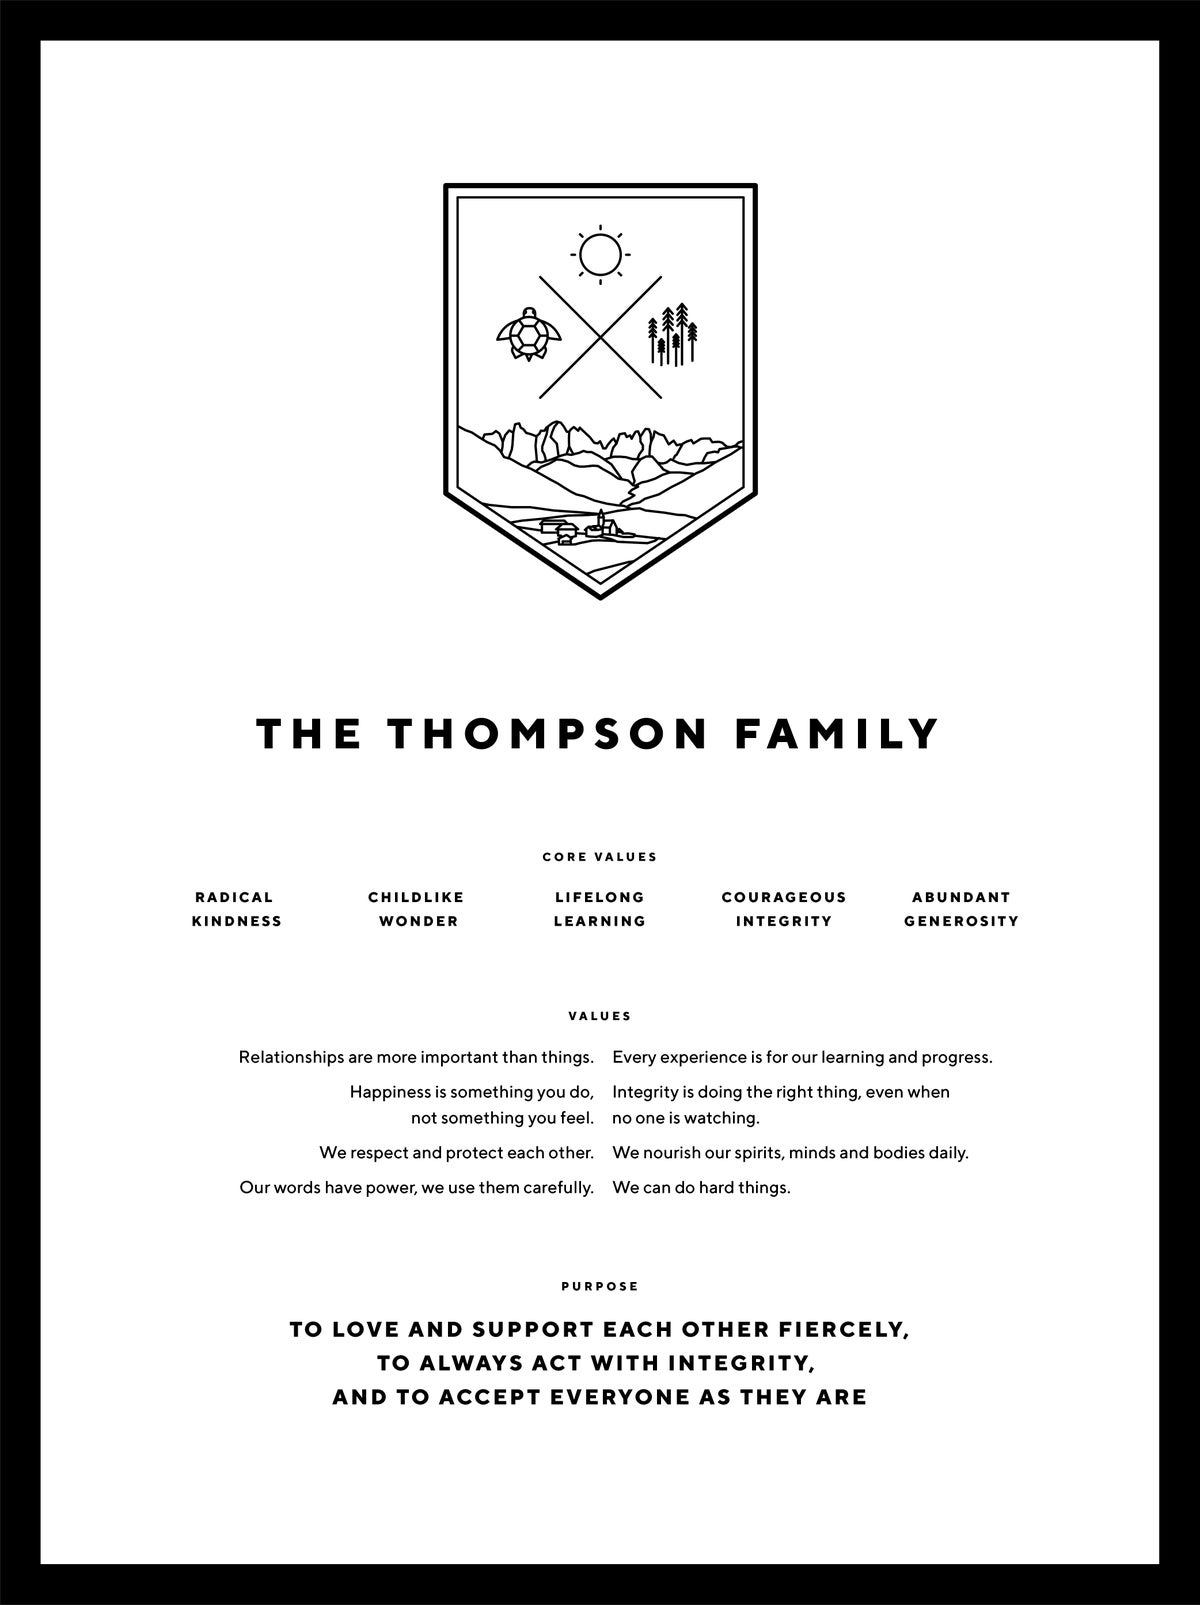 Image of Family Crest and Purpose Design